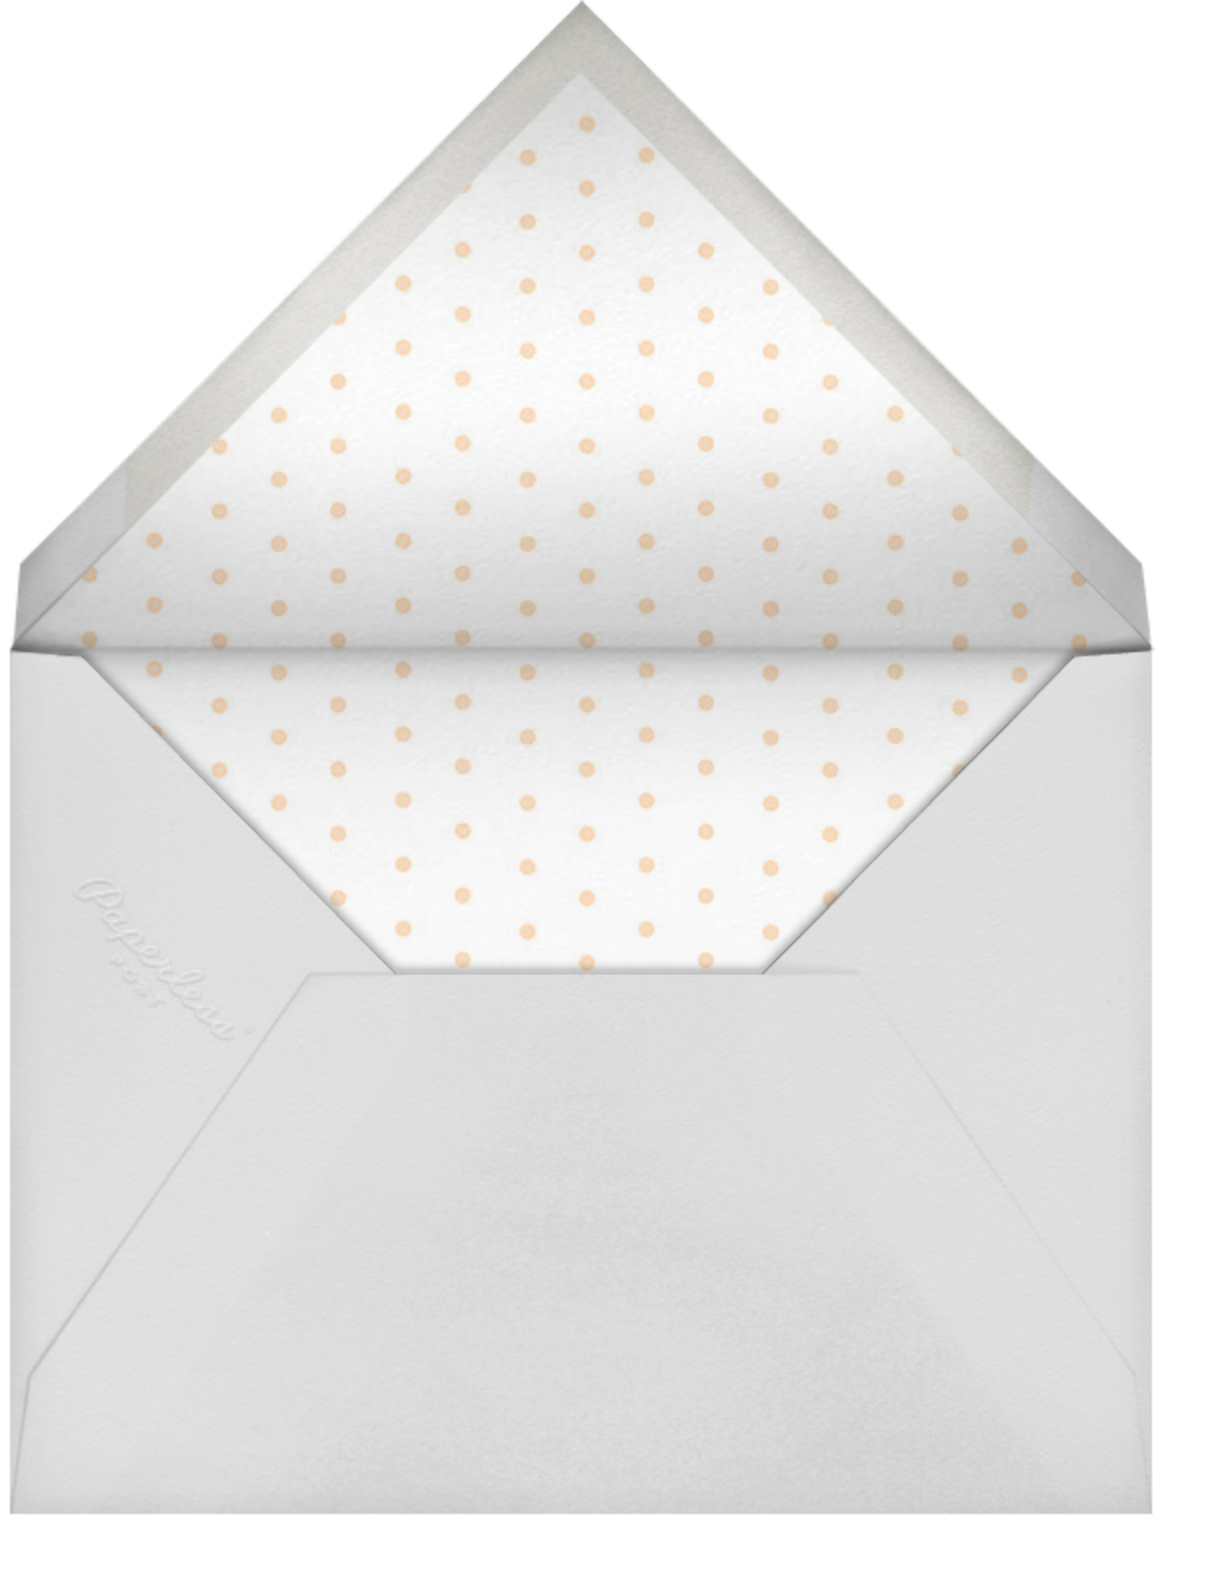 Mariachi - Rifle Paper Co. - Adult birthday - envelope back